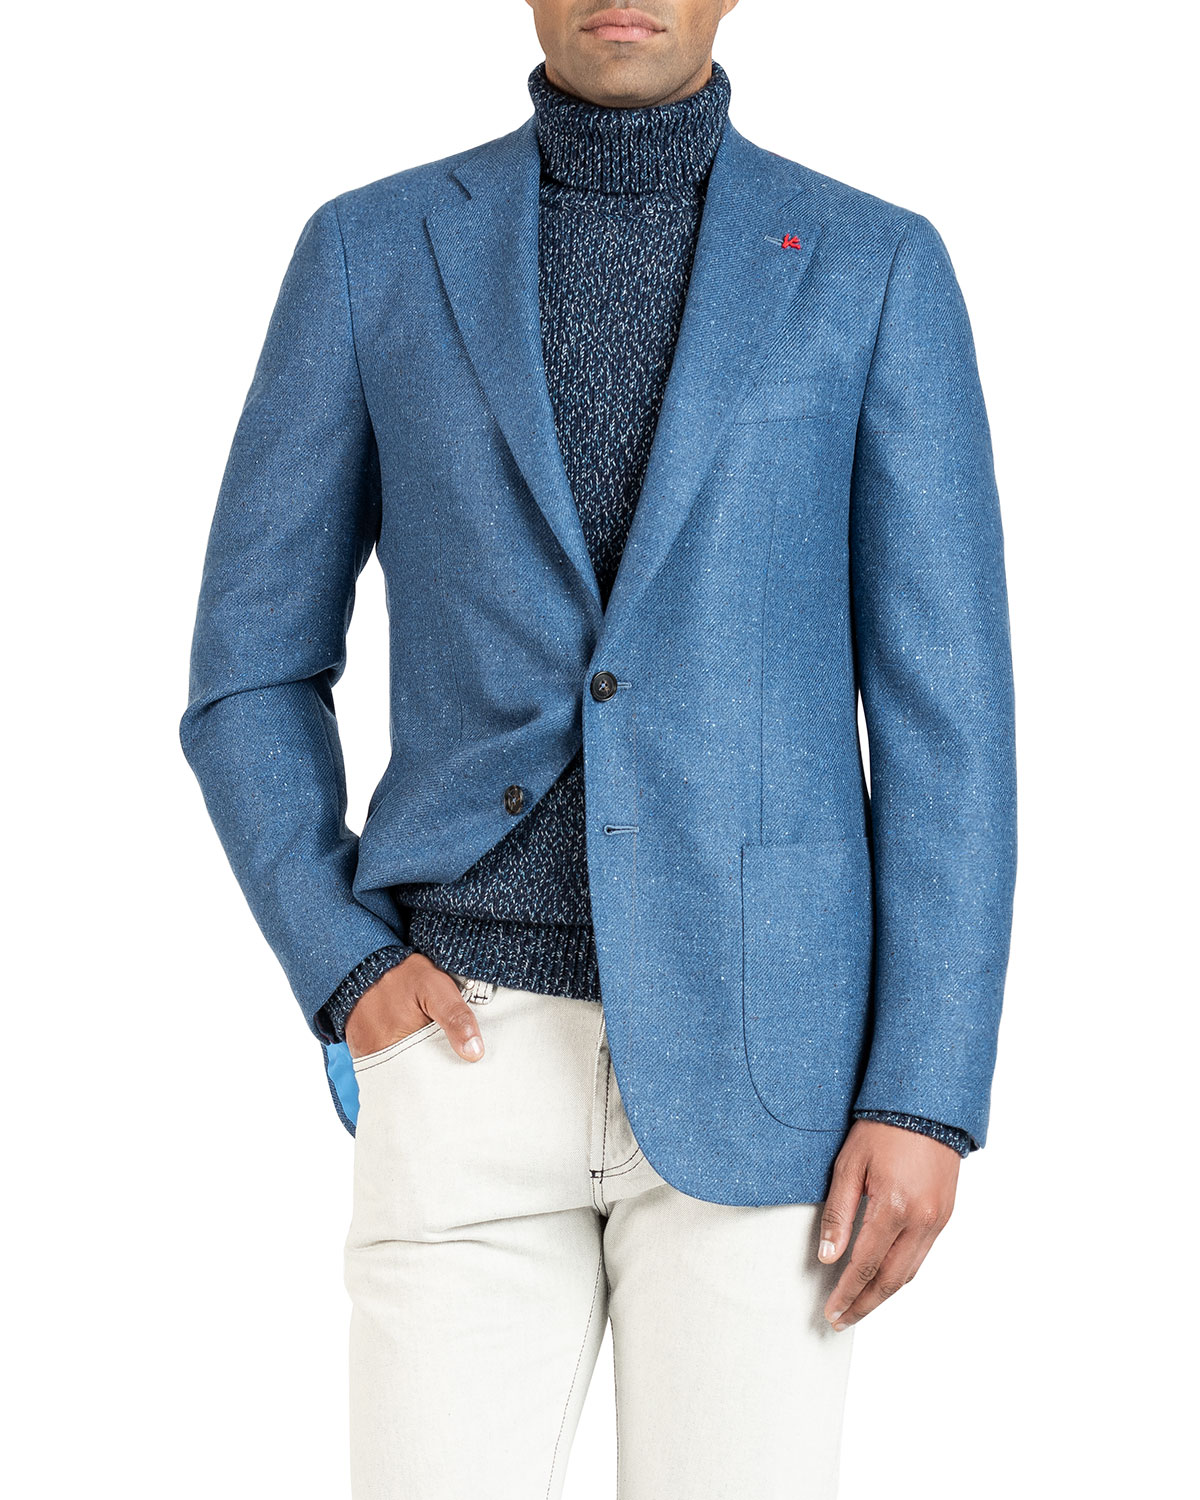 Isaia Jackets MEN'S DONEGAL CASHMERE TWO-BUTTON JACKET